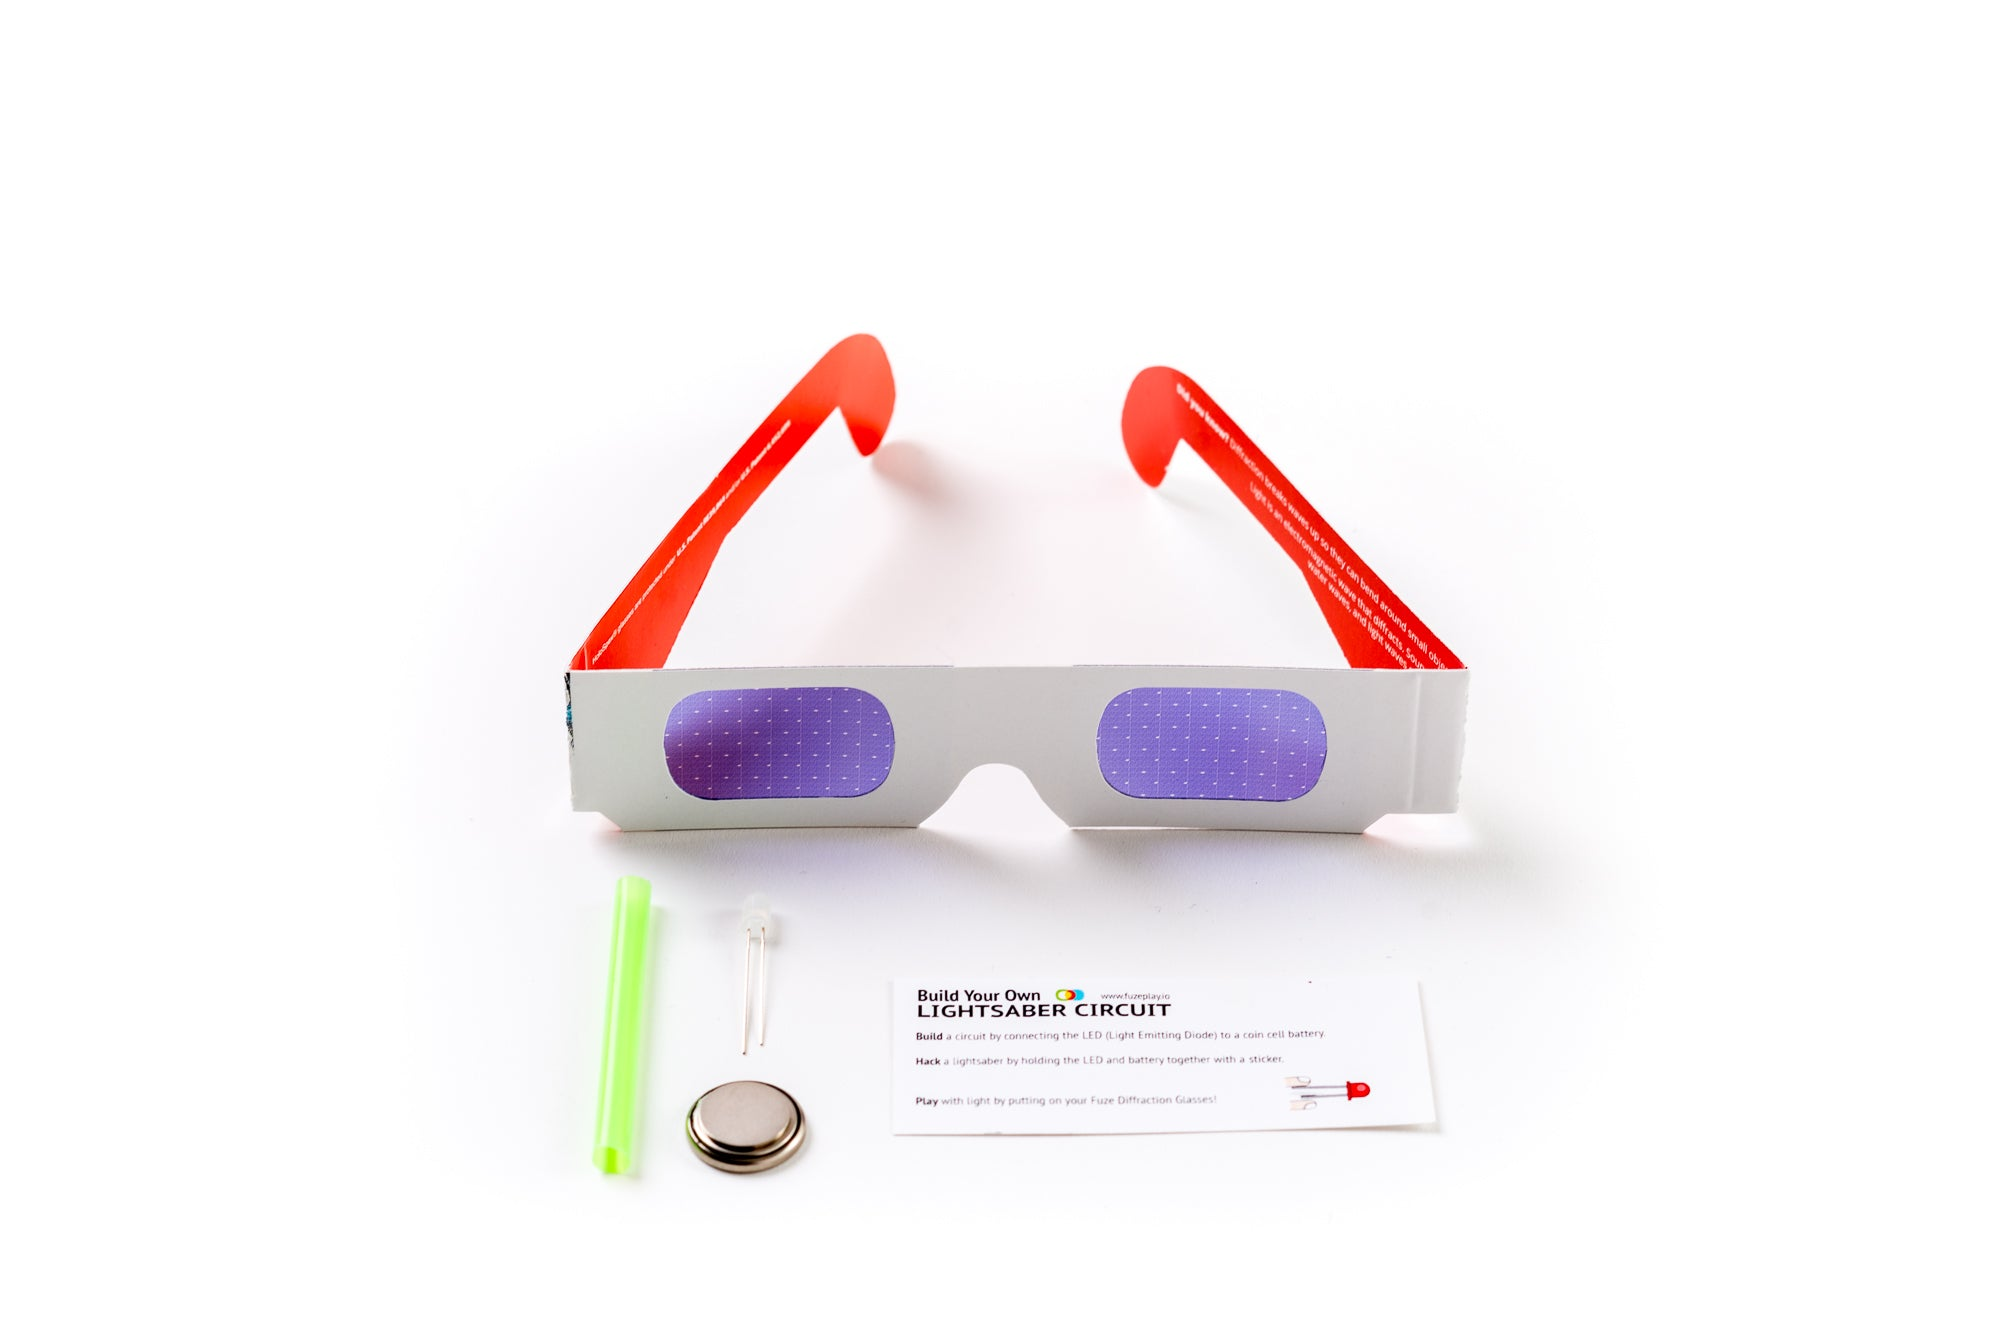 Fuzeplay Lightsaber Circuit Kit Star Diffraction Glasses Build Your Own And